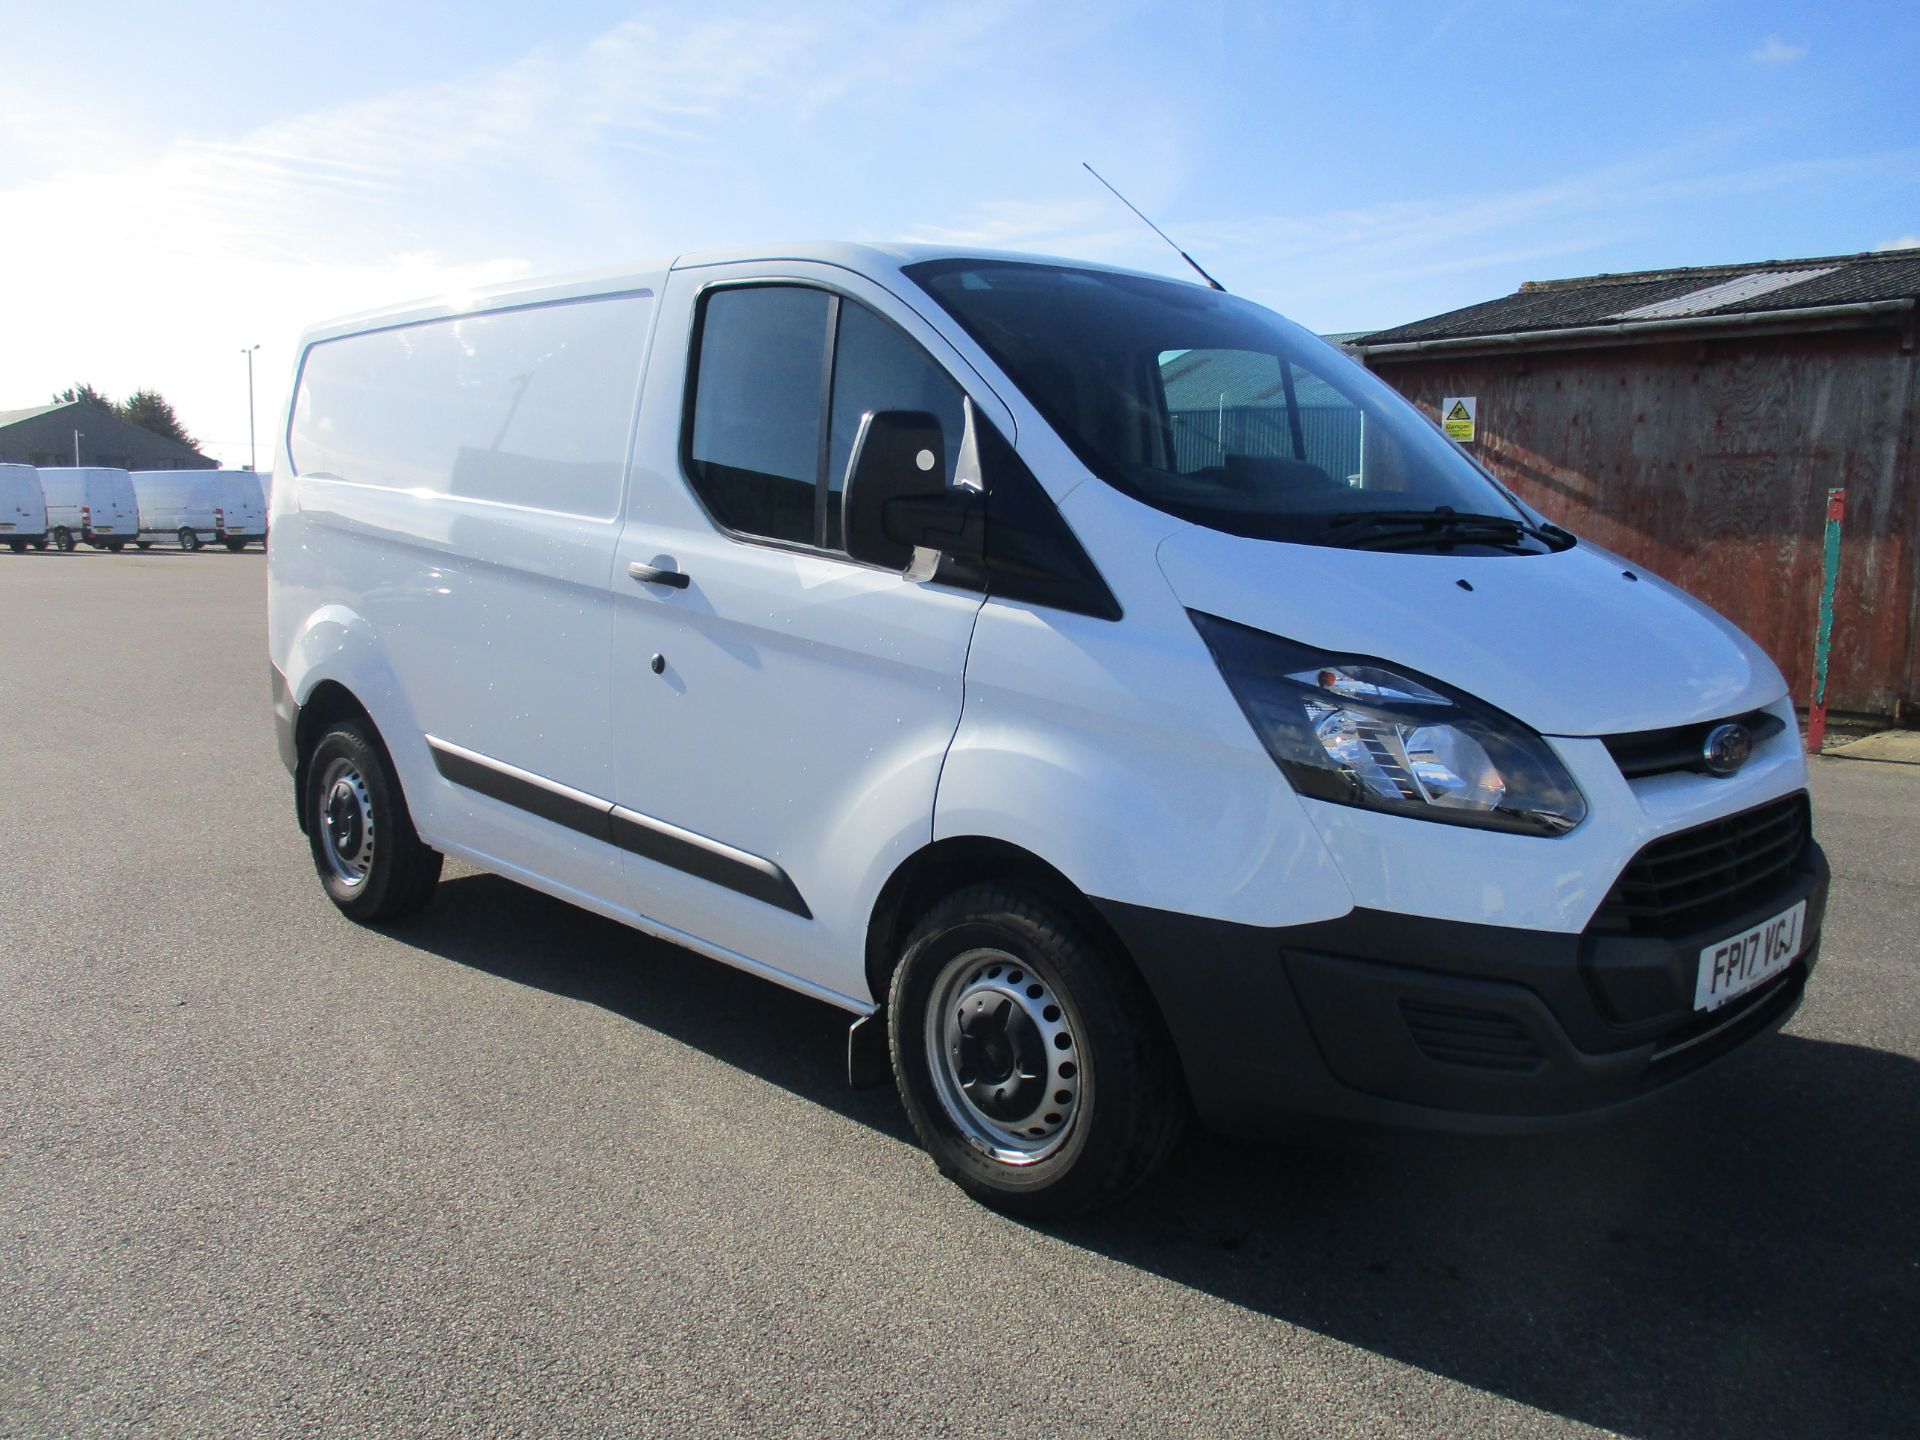 2017 Ford Transit Custom 290 L1 DIESEL FWD 2.0 TDCI 105PS LOW ROOF VAN EURO 6 (FP17VGJ)